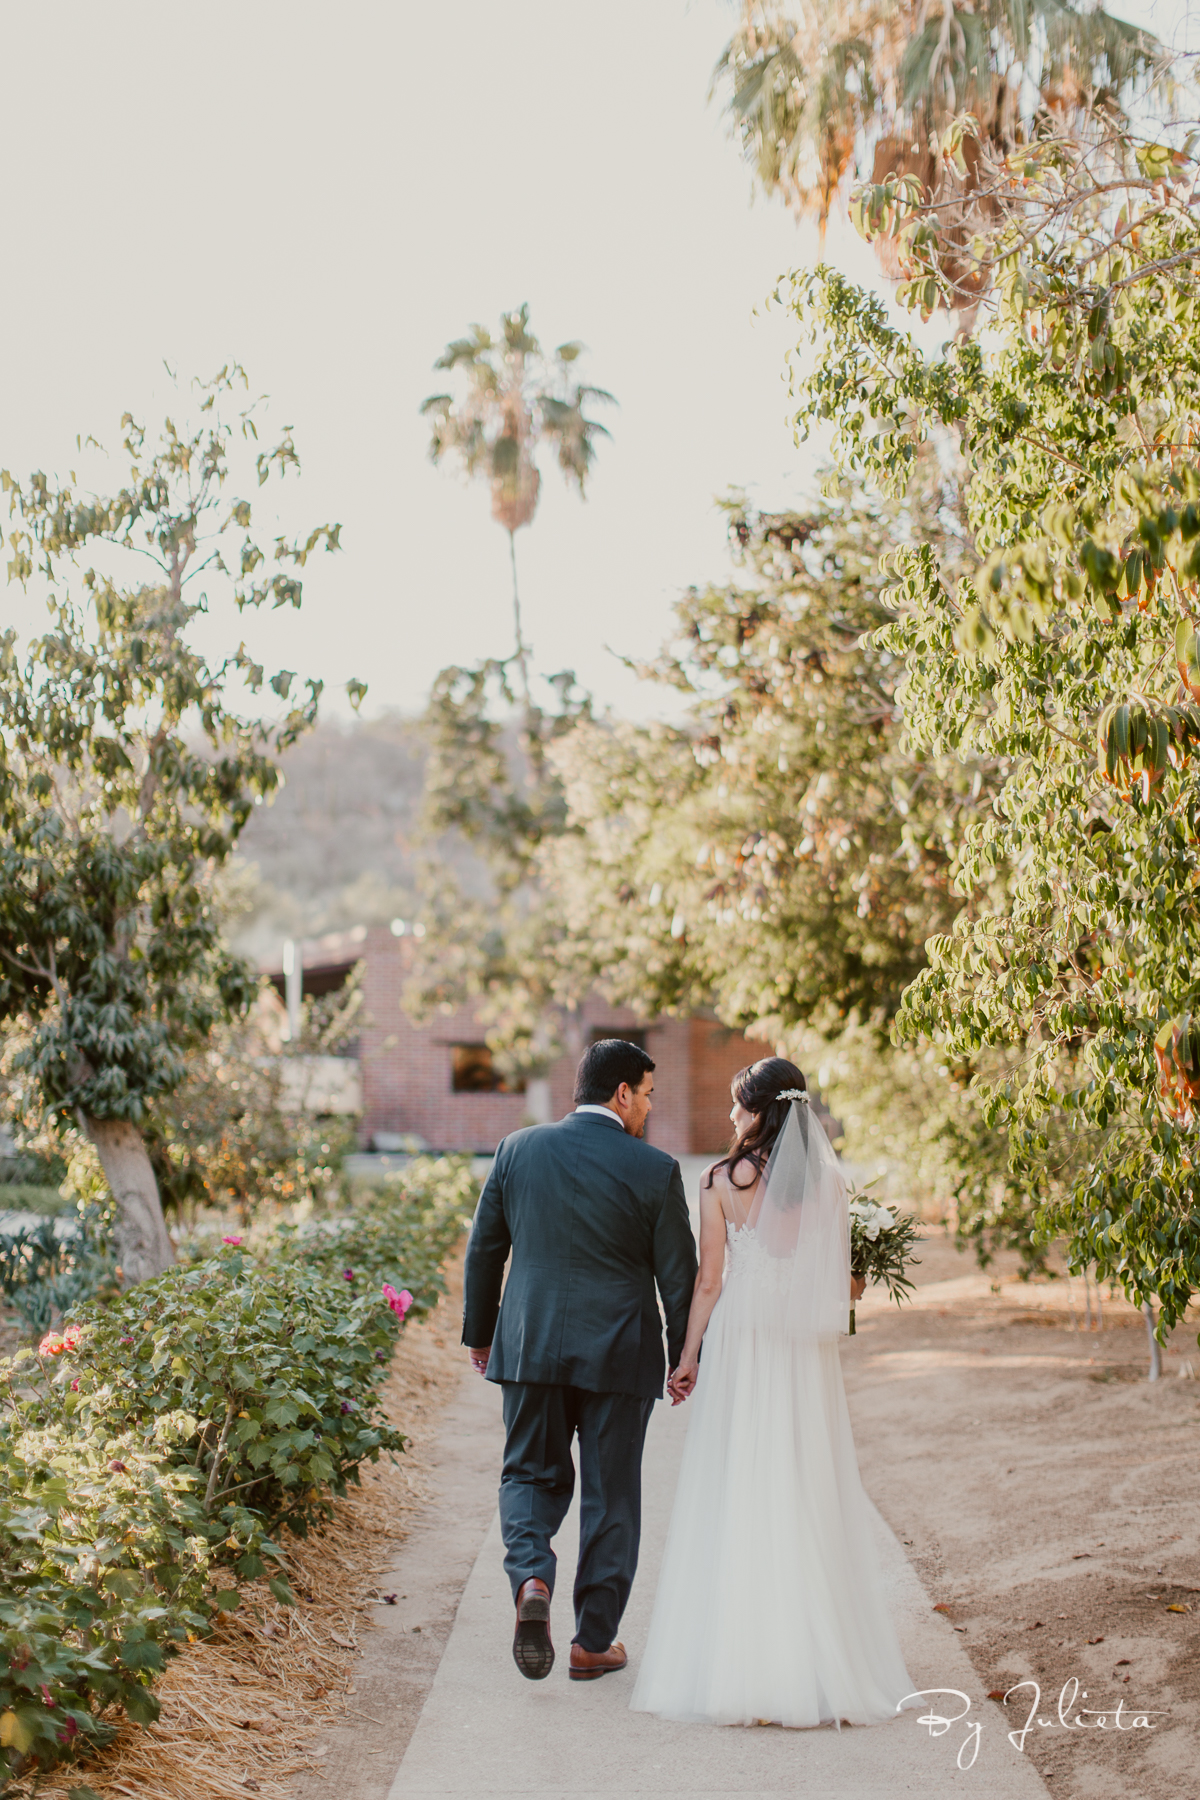 FlorasFarmWedding.L+S.JulietaAmezcuaPhotography.(376of750).jpg